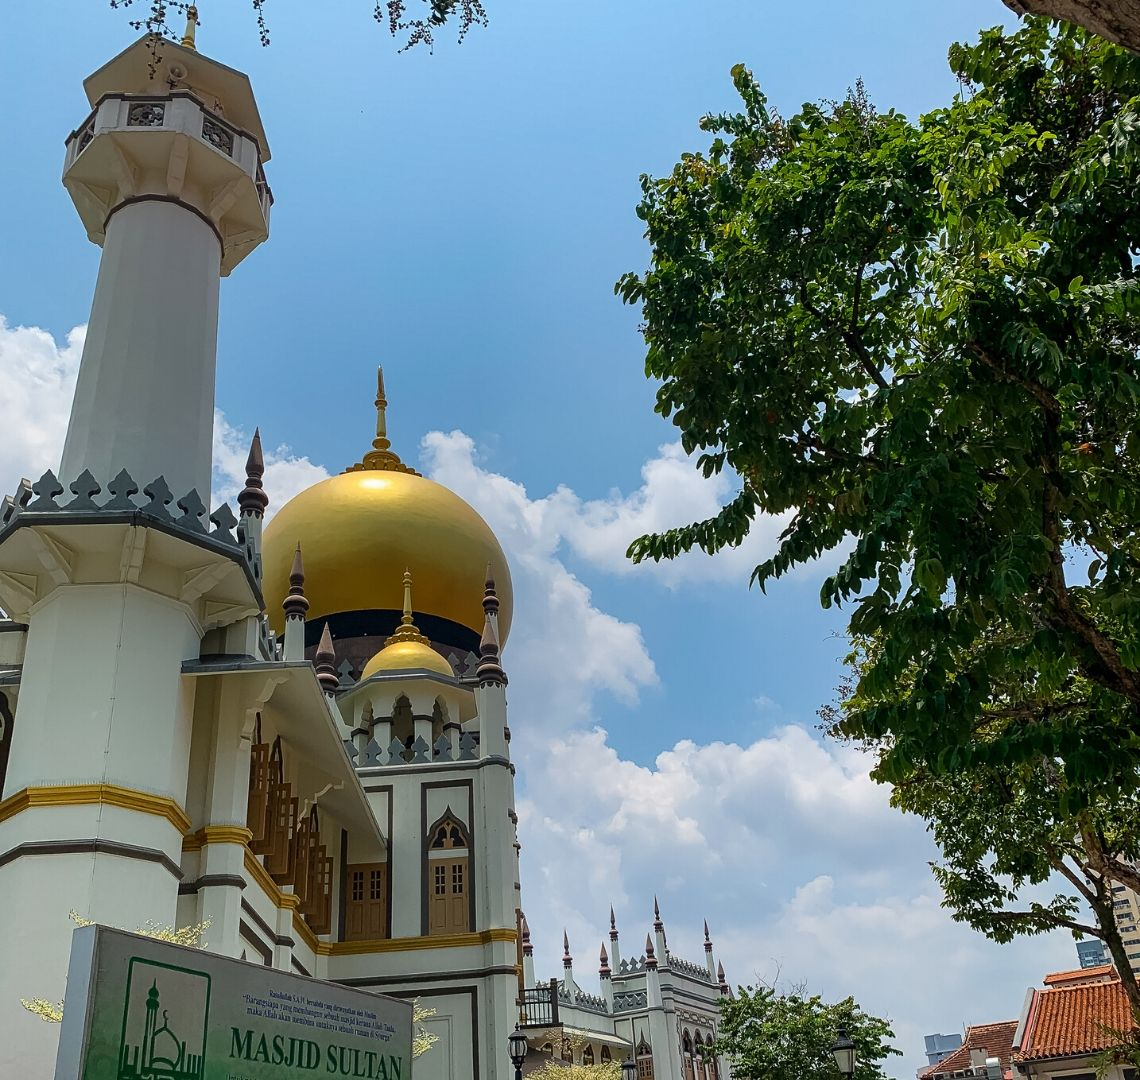 Things To Do In Singapore With Kids - the Sultan Mosque in Arab Quarter near Haji Lane has gold domes on the top and white walls. The decorations around the minarets are gold and grey. There is a tree to the right of the image.